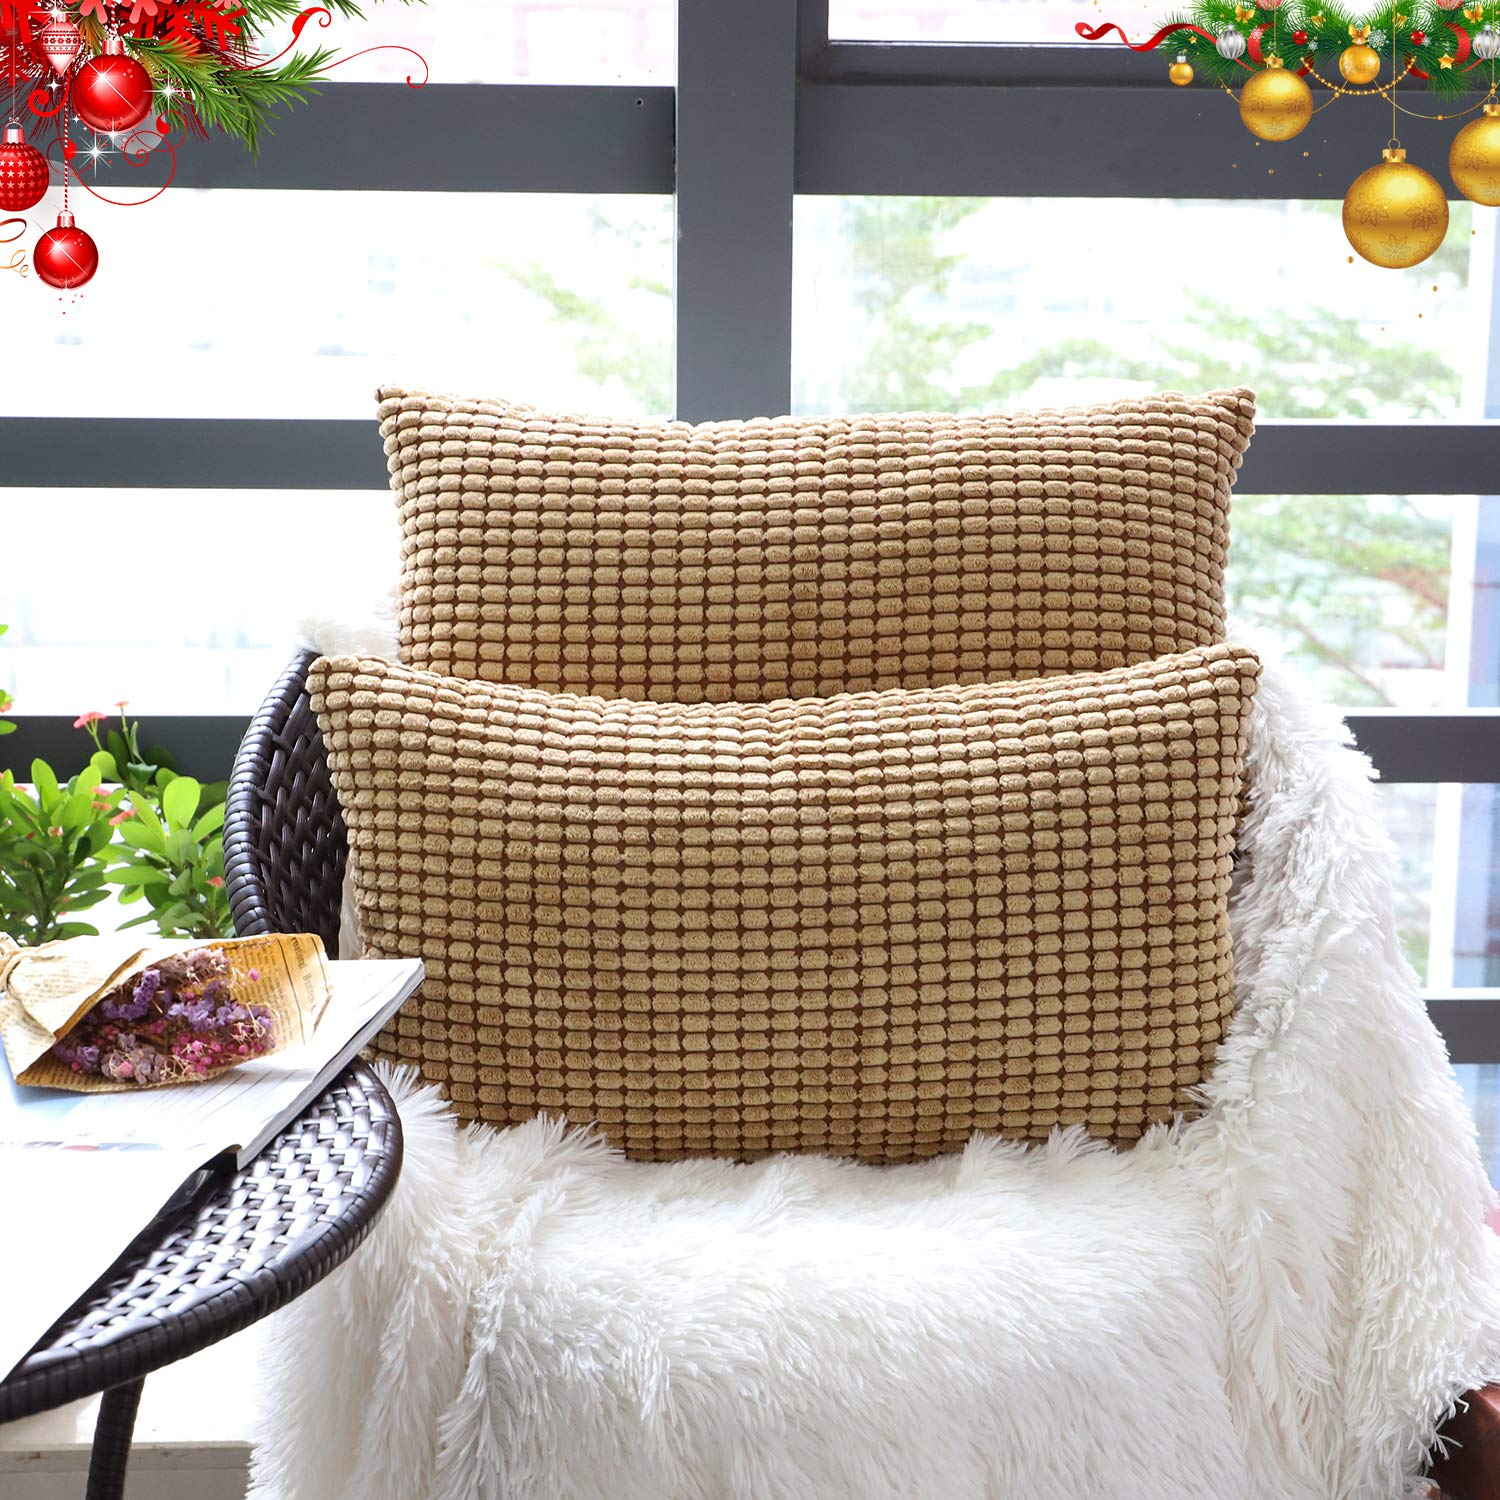 """Set of 2,Decorative Lumbar Throw Pillow Covers 12"""" x 20""""(No Insert),Solid Cozy Corduroy Corn Stripe Pattern Bloster Pillow Case,Soft Rectangle Cushion Cover with Zipper for Couch/Sofa/Bed,Light Brown"""